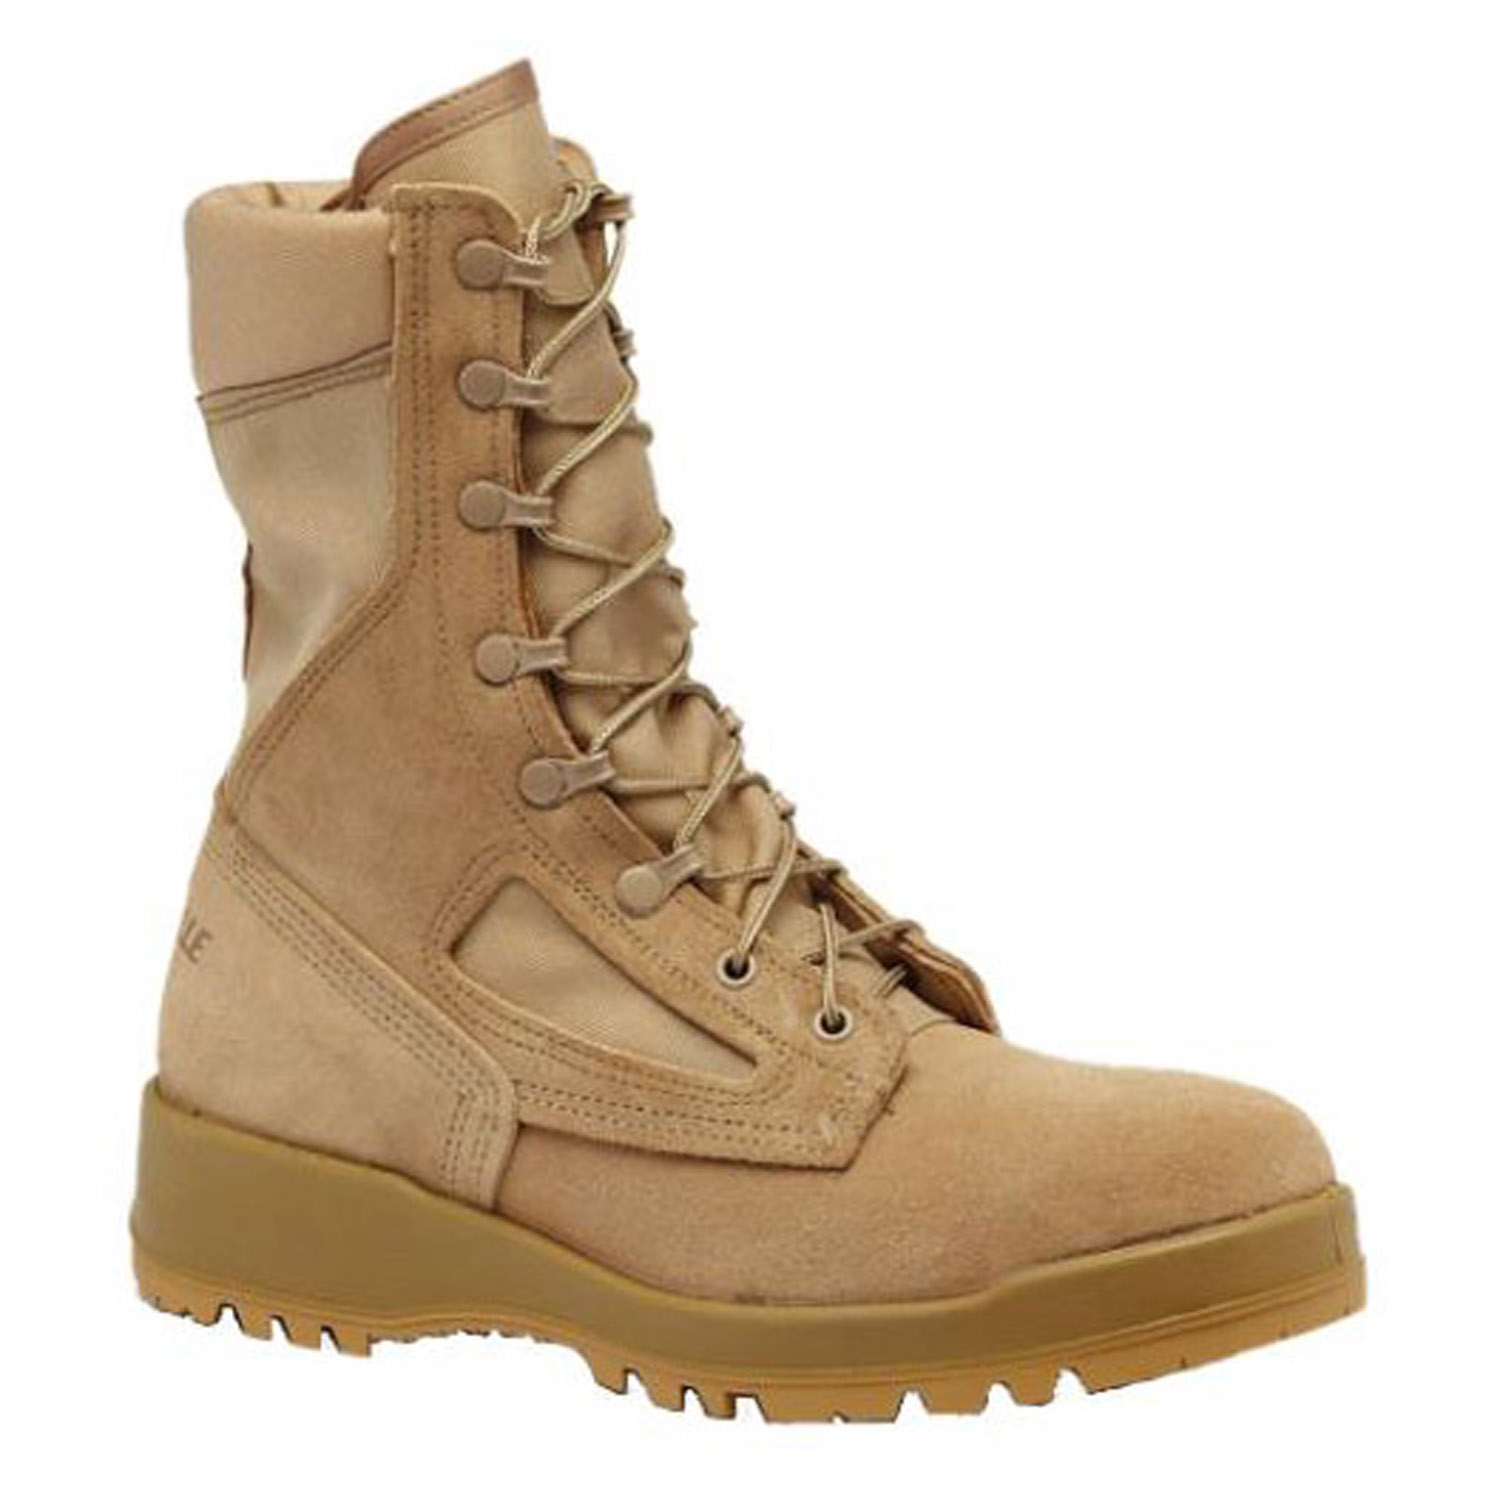 Belleville Women's Hot Weather Boot